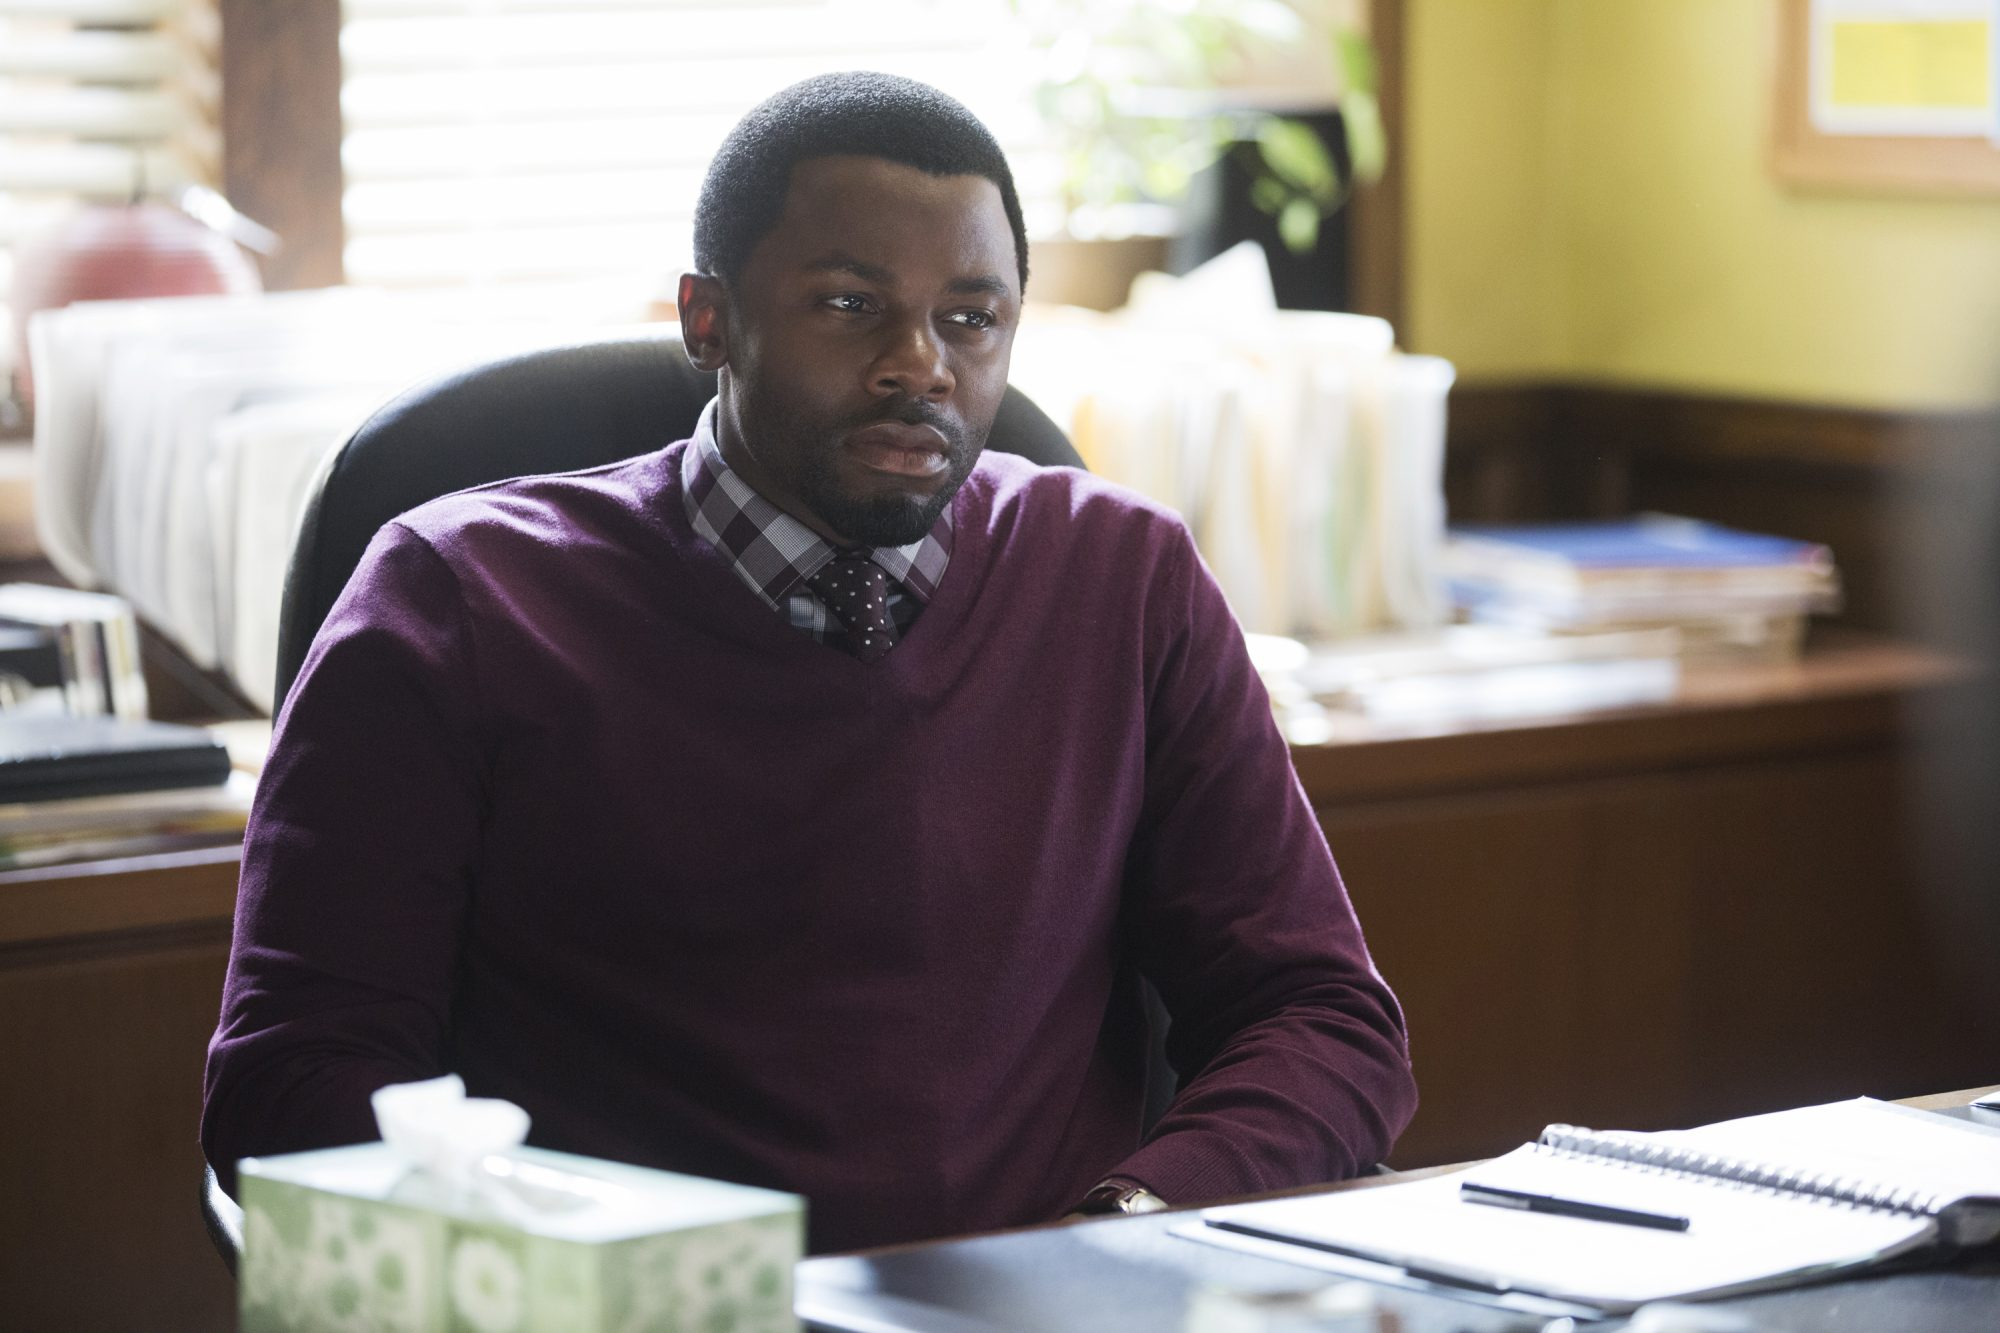 Derek Luke as Kevin Porter in 13 REASONS WHY